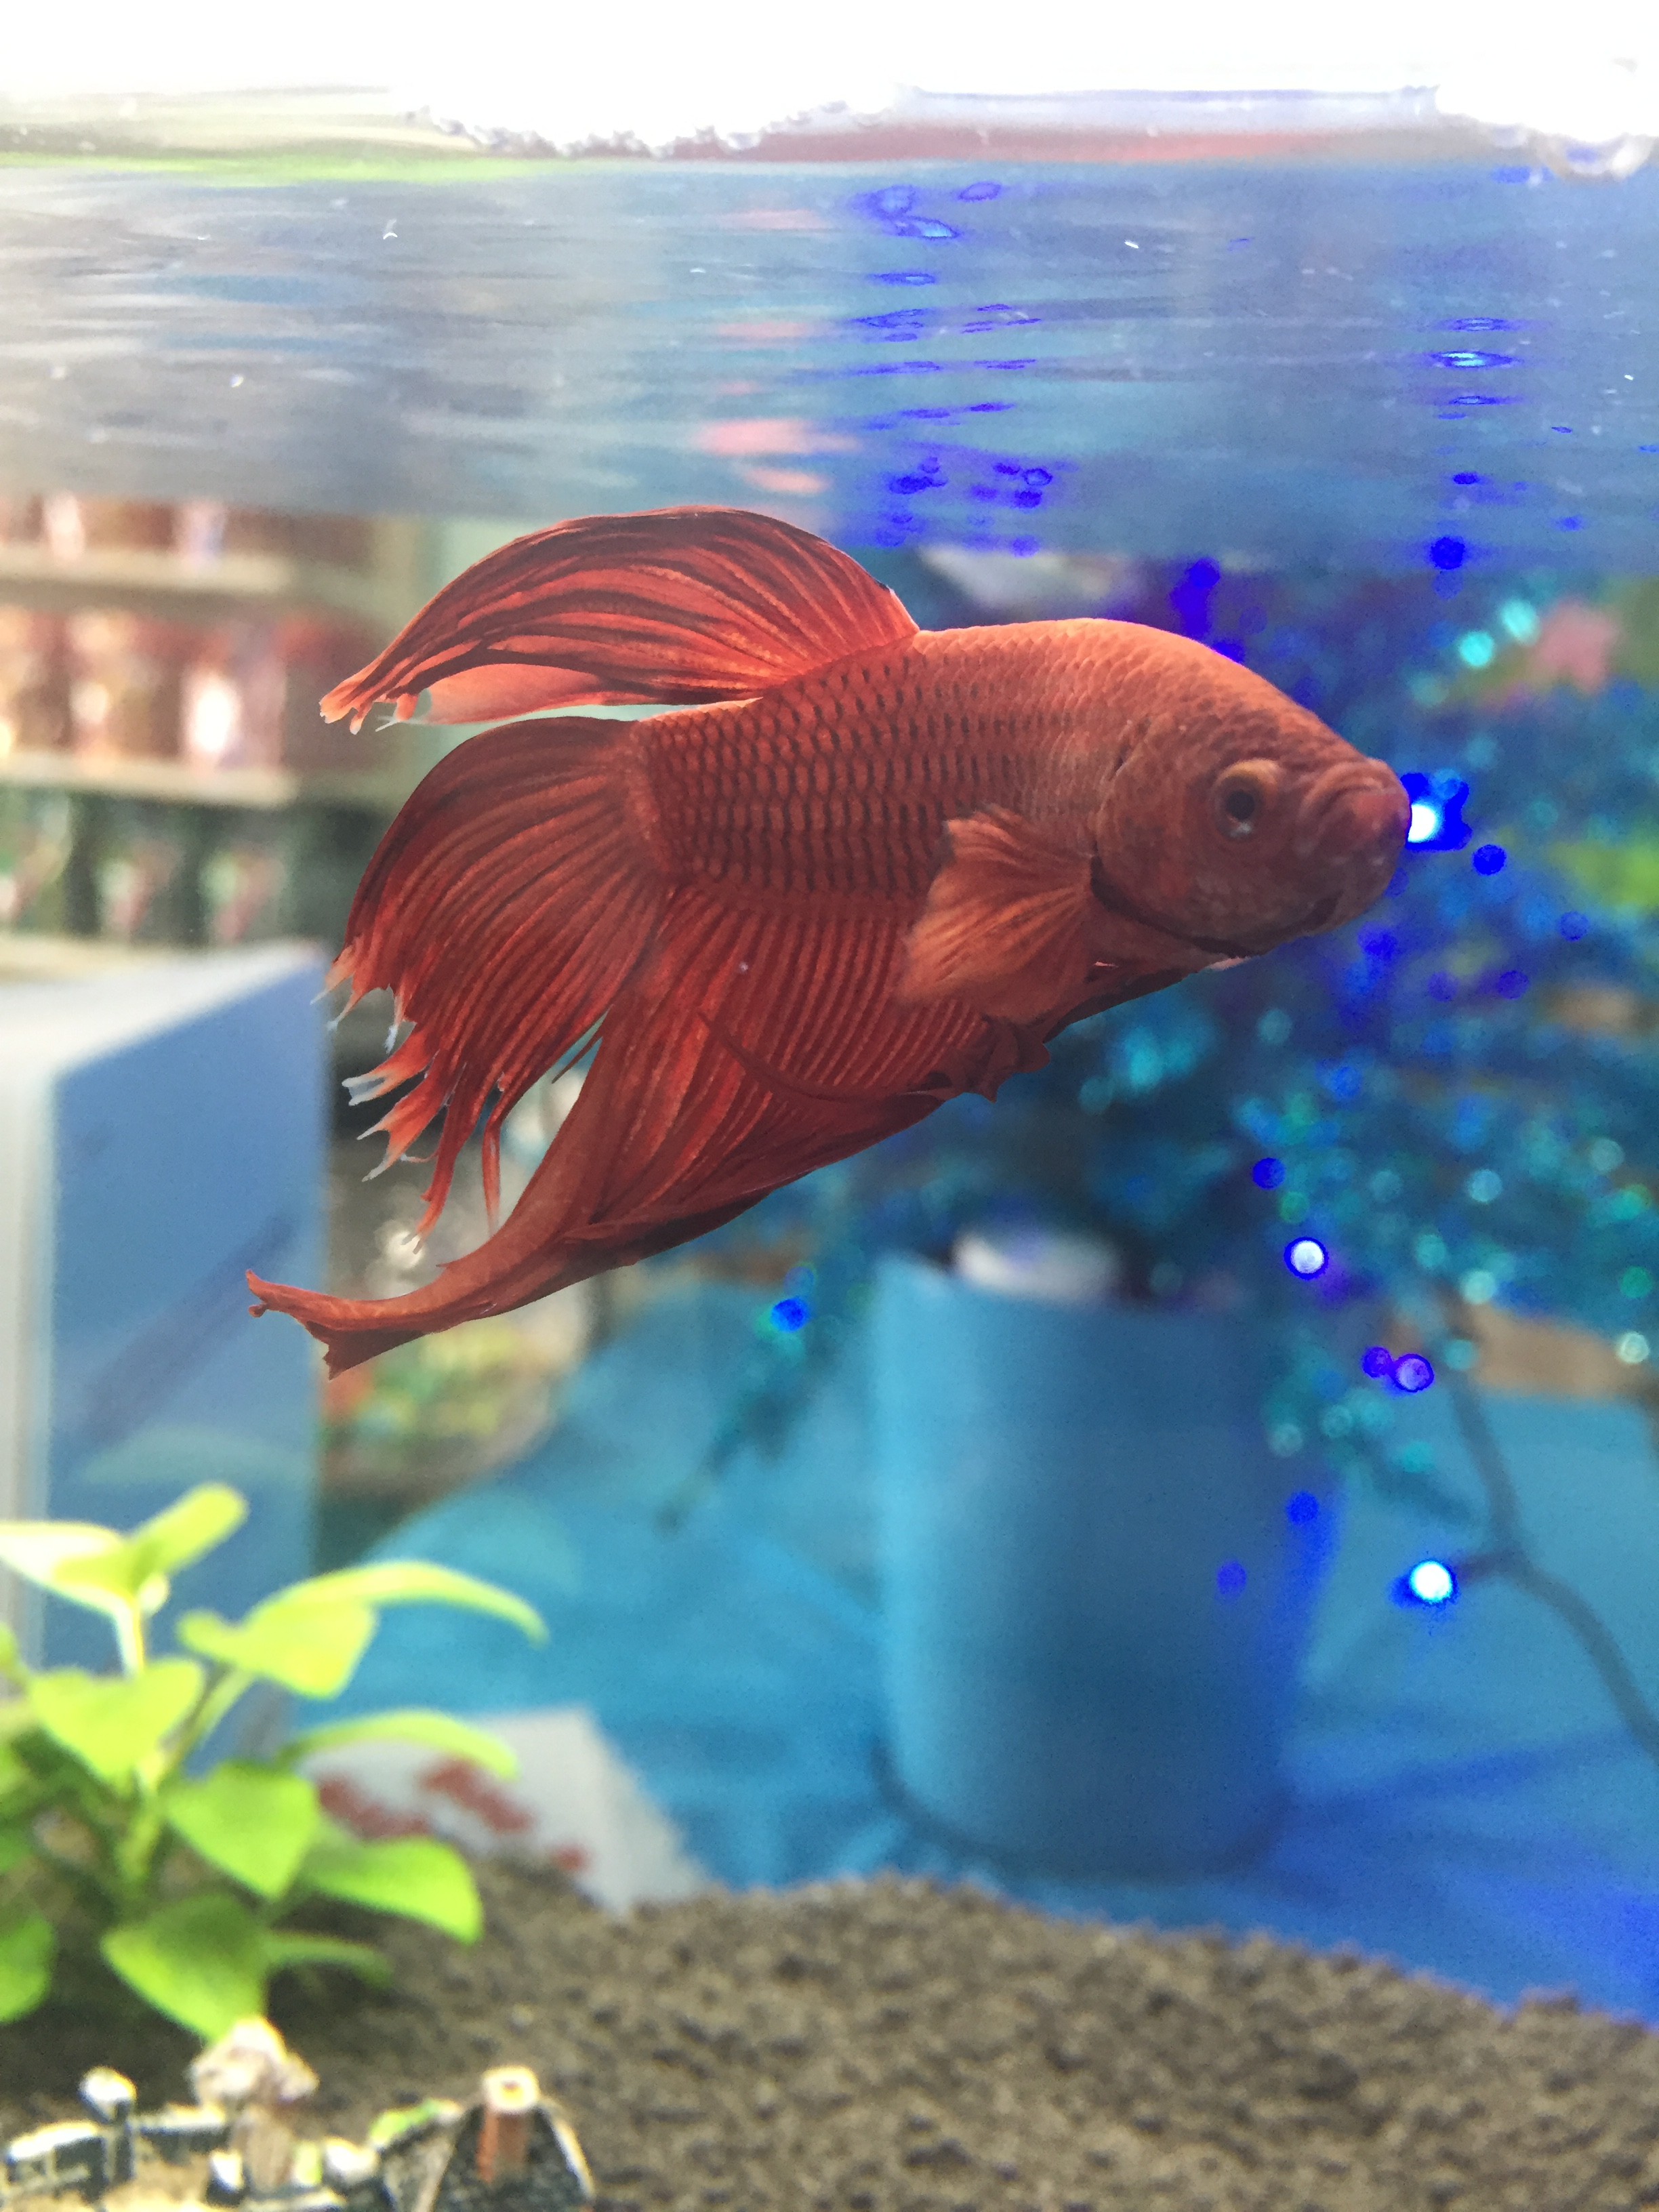 Dining A Month Laying At Bottom Betta Fish Not Eating Betta Betta Aquatic Veterinary Services Betta Fish Not Eating houzz-03 Betta Fish Not Eating